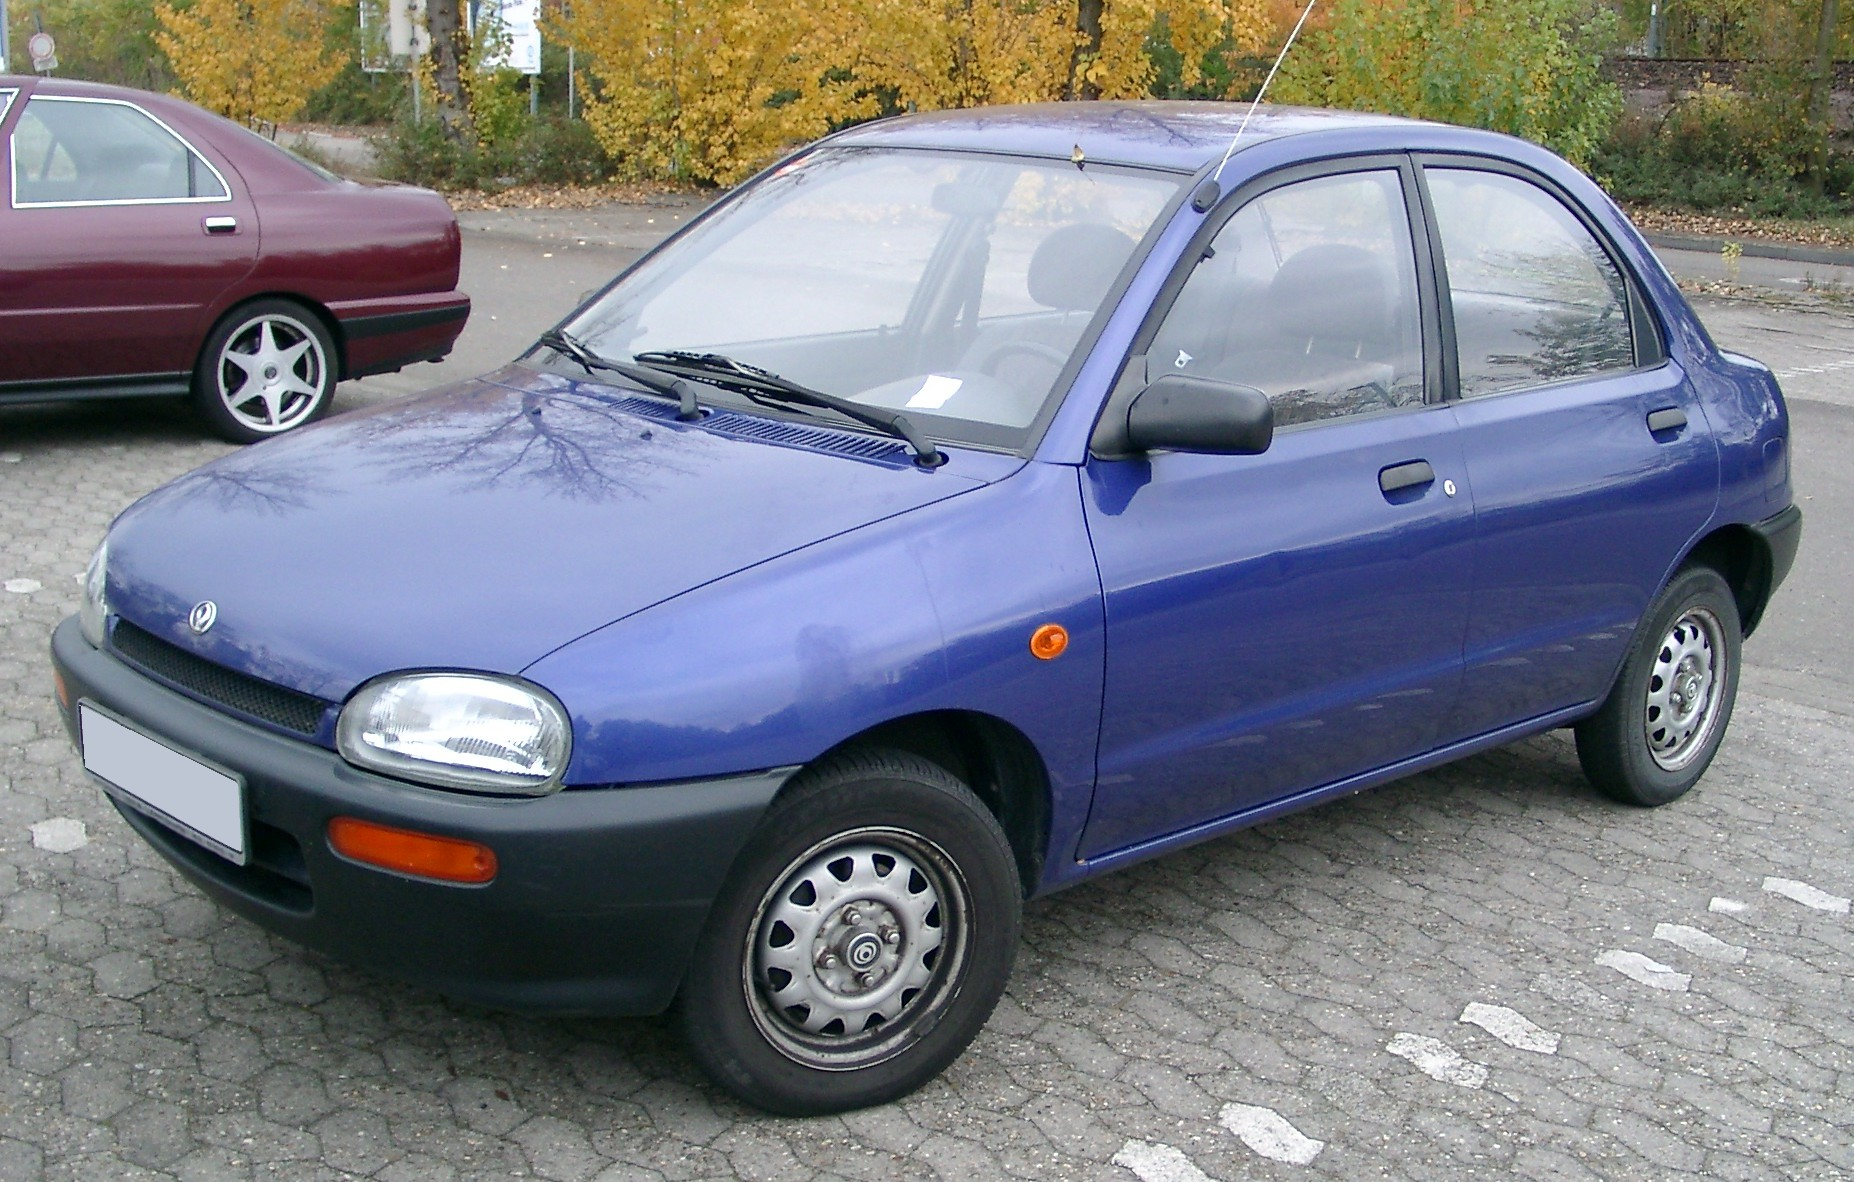 Hatchback >> File:Mazda 121 front 20071025.jpg - Wikimedia Commons